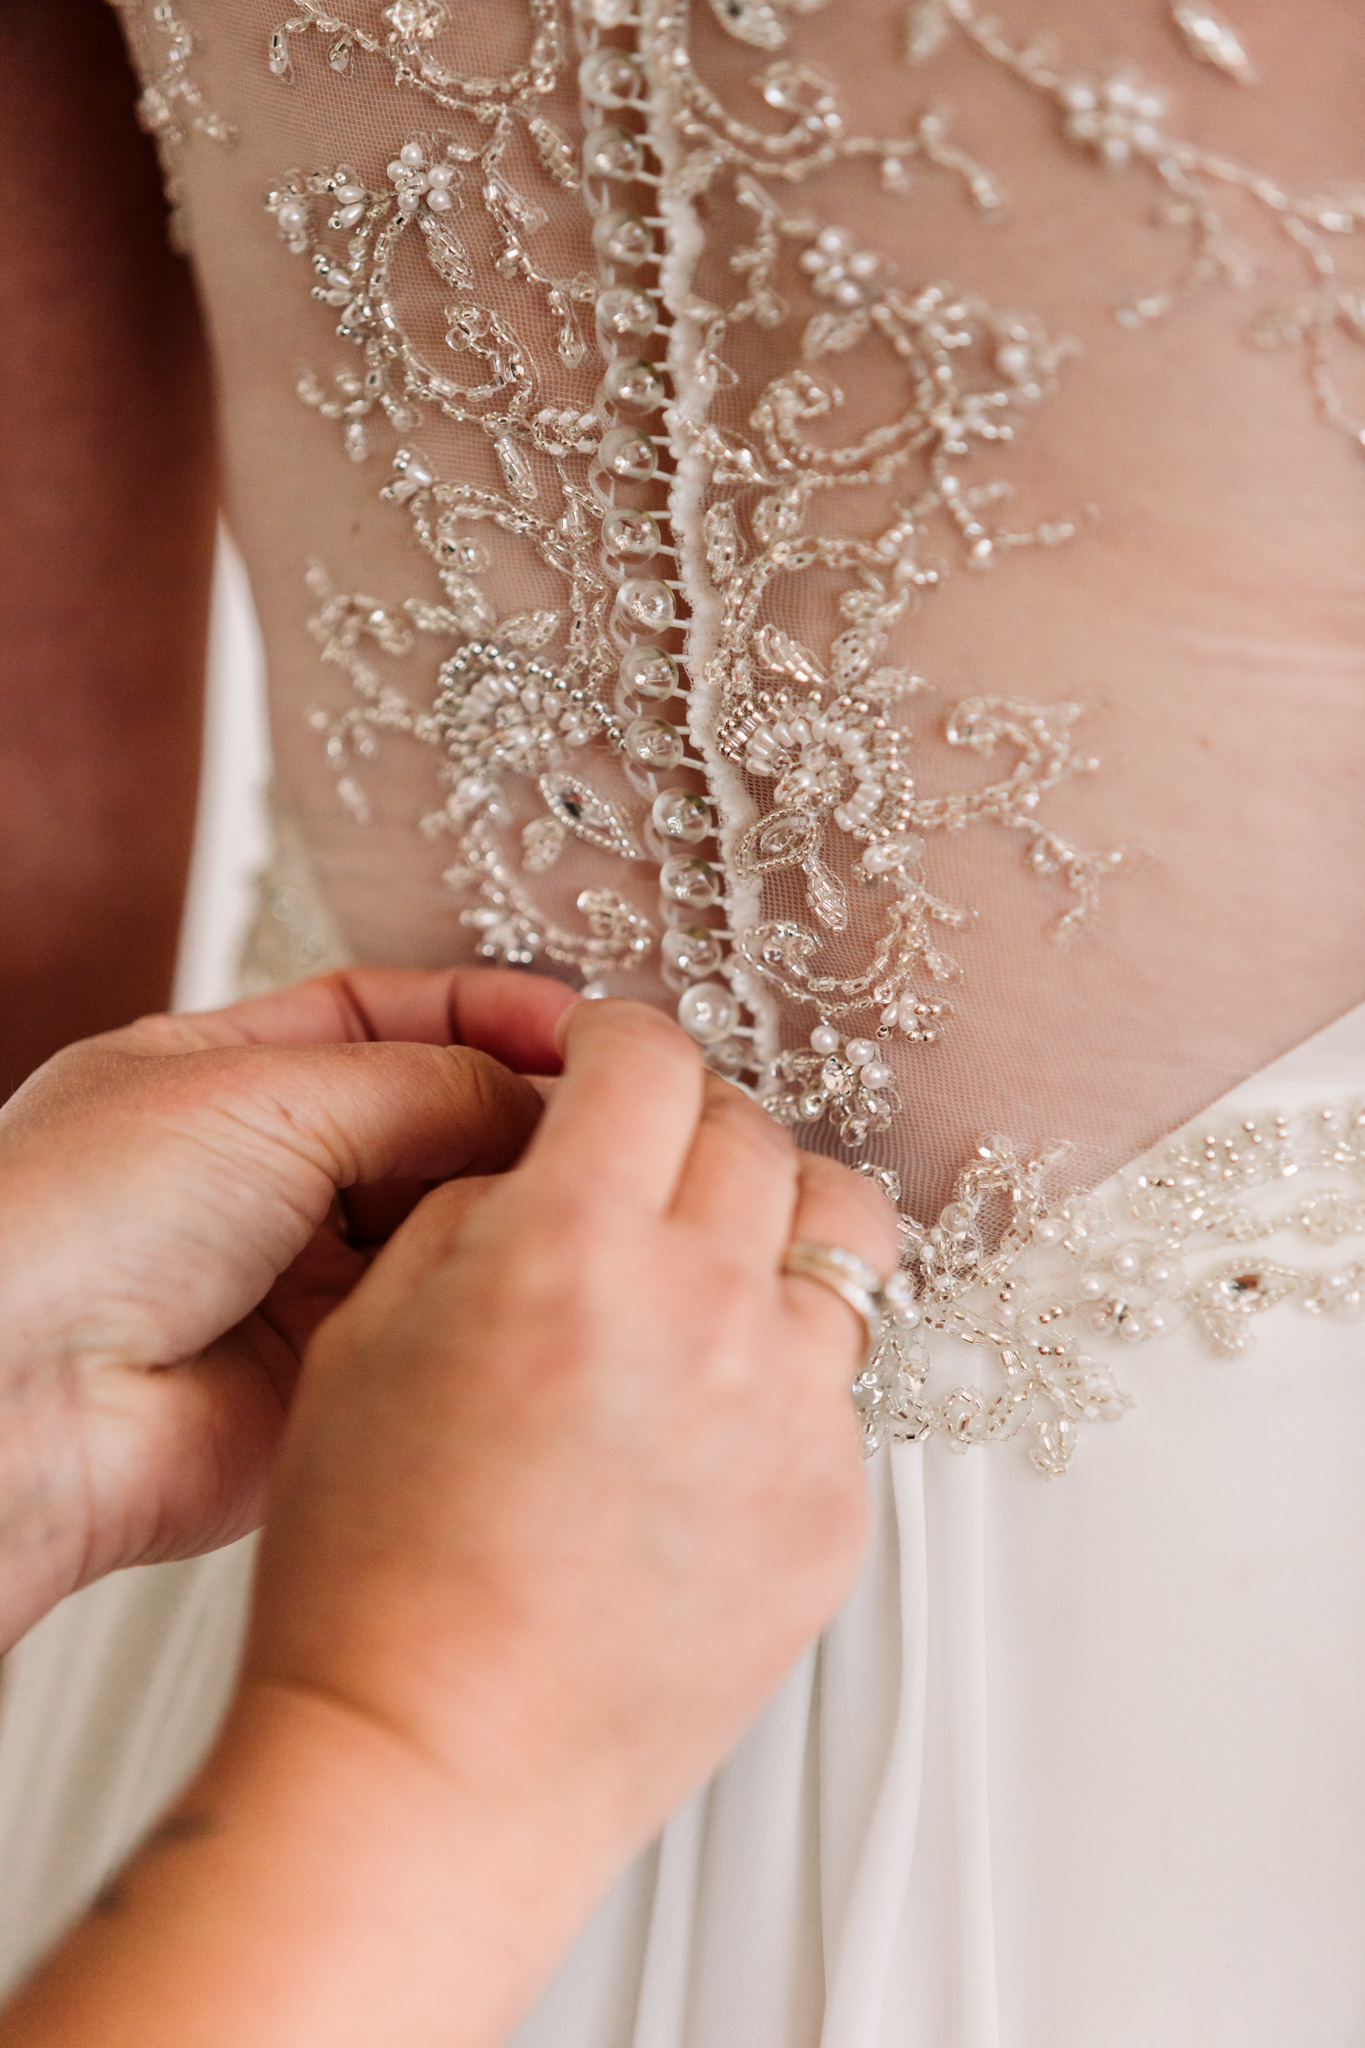 Wedding gown lace details at a destination wedding at the Port Molyneux School